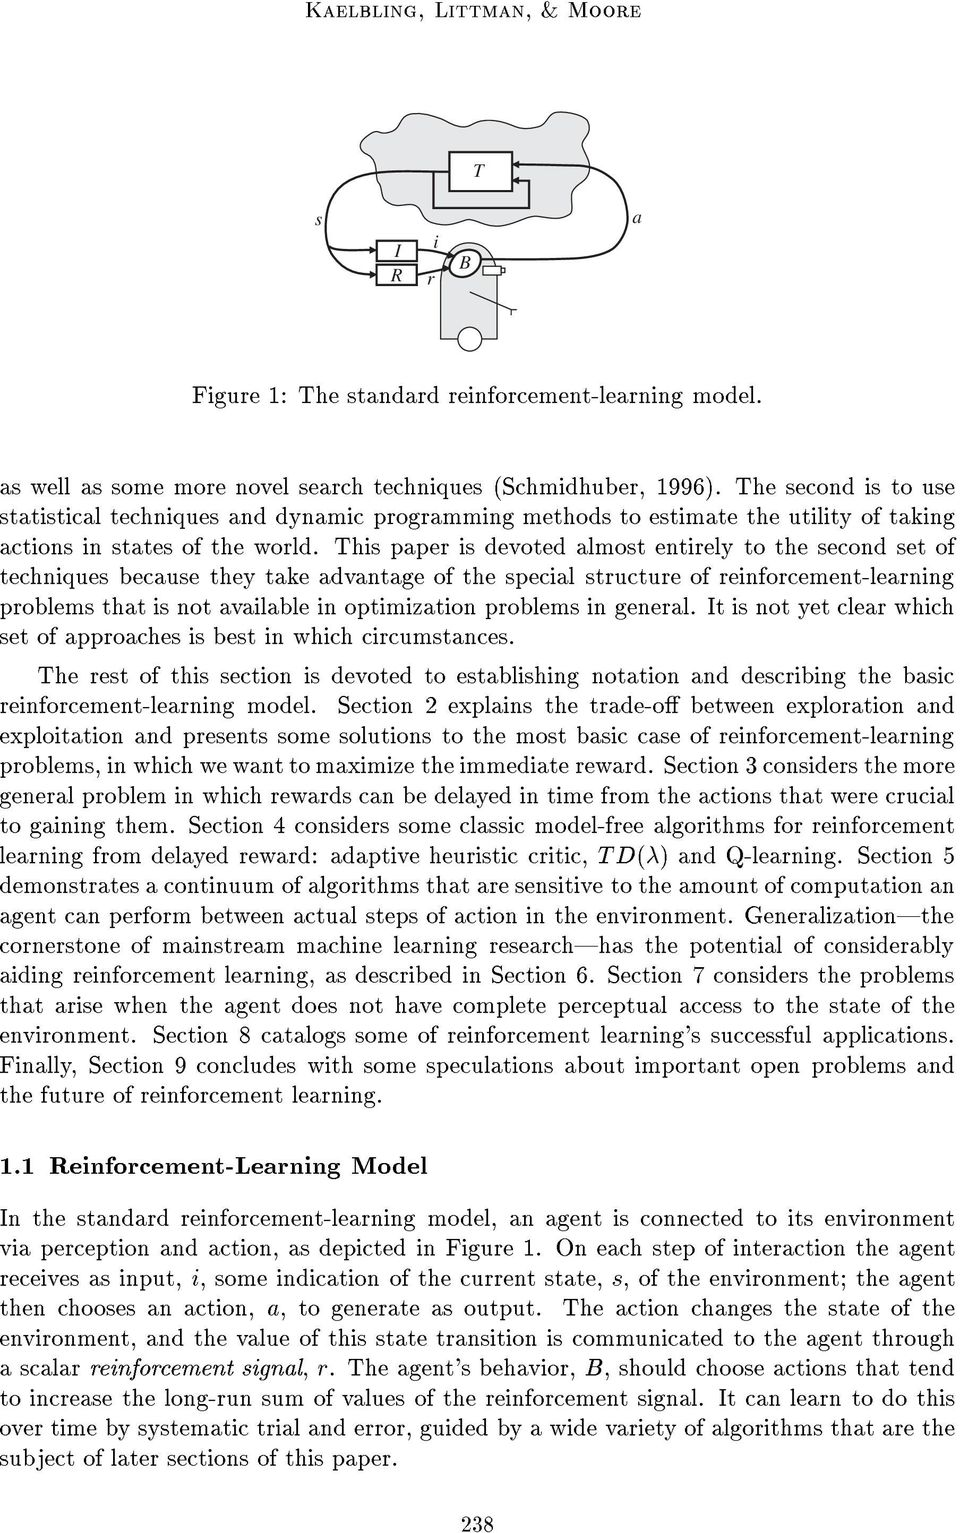 This paper is devoted almost entirely to the second set of techniques because they take advantage of the special structure of reinforcement-learning problems that is not available in optimization